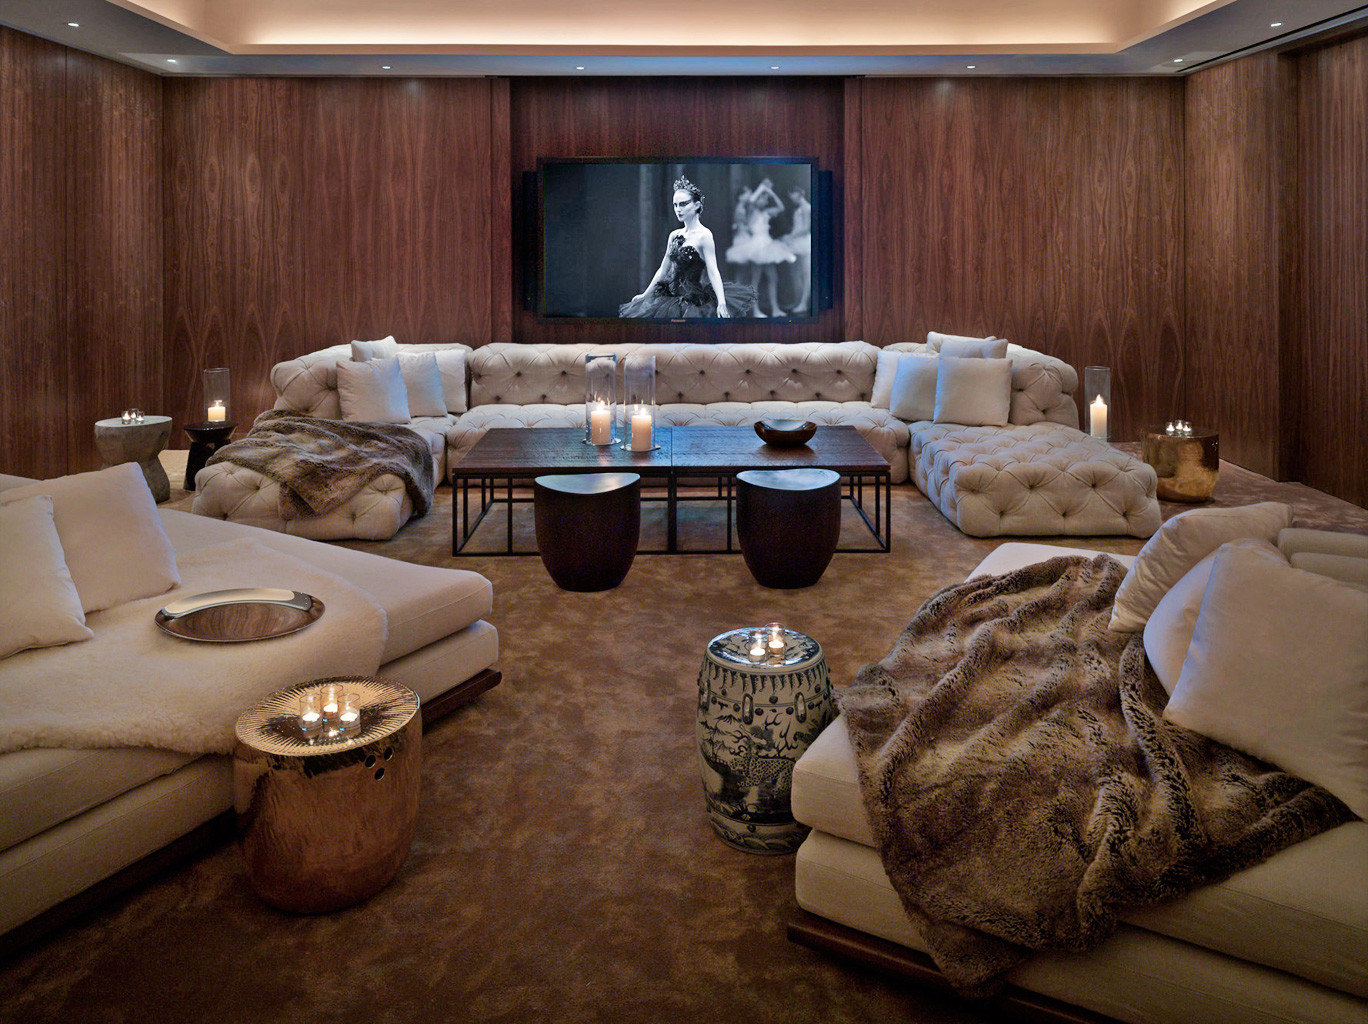 Boutique Entertainment Historic Hotels Lounge indoor room Boat property vehicle passenger ship yacht living room ship interior design luxury yacht home watercraft Suite estate furniture